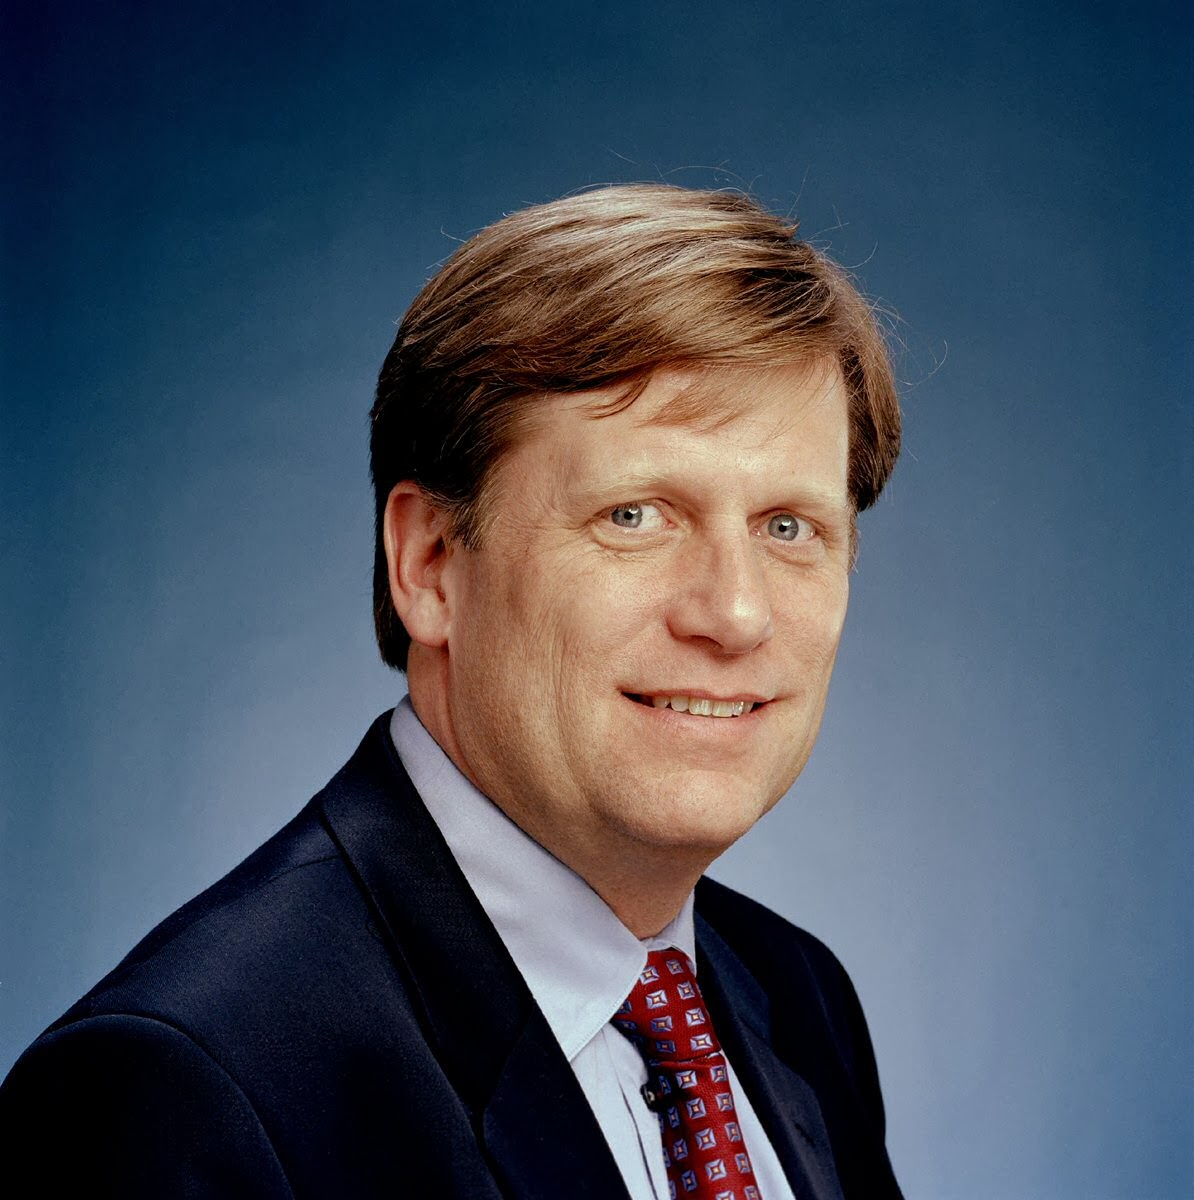 Michael Mcfaul, the former U.S. Ambassador to Russia